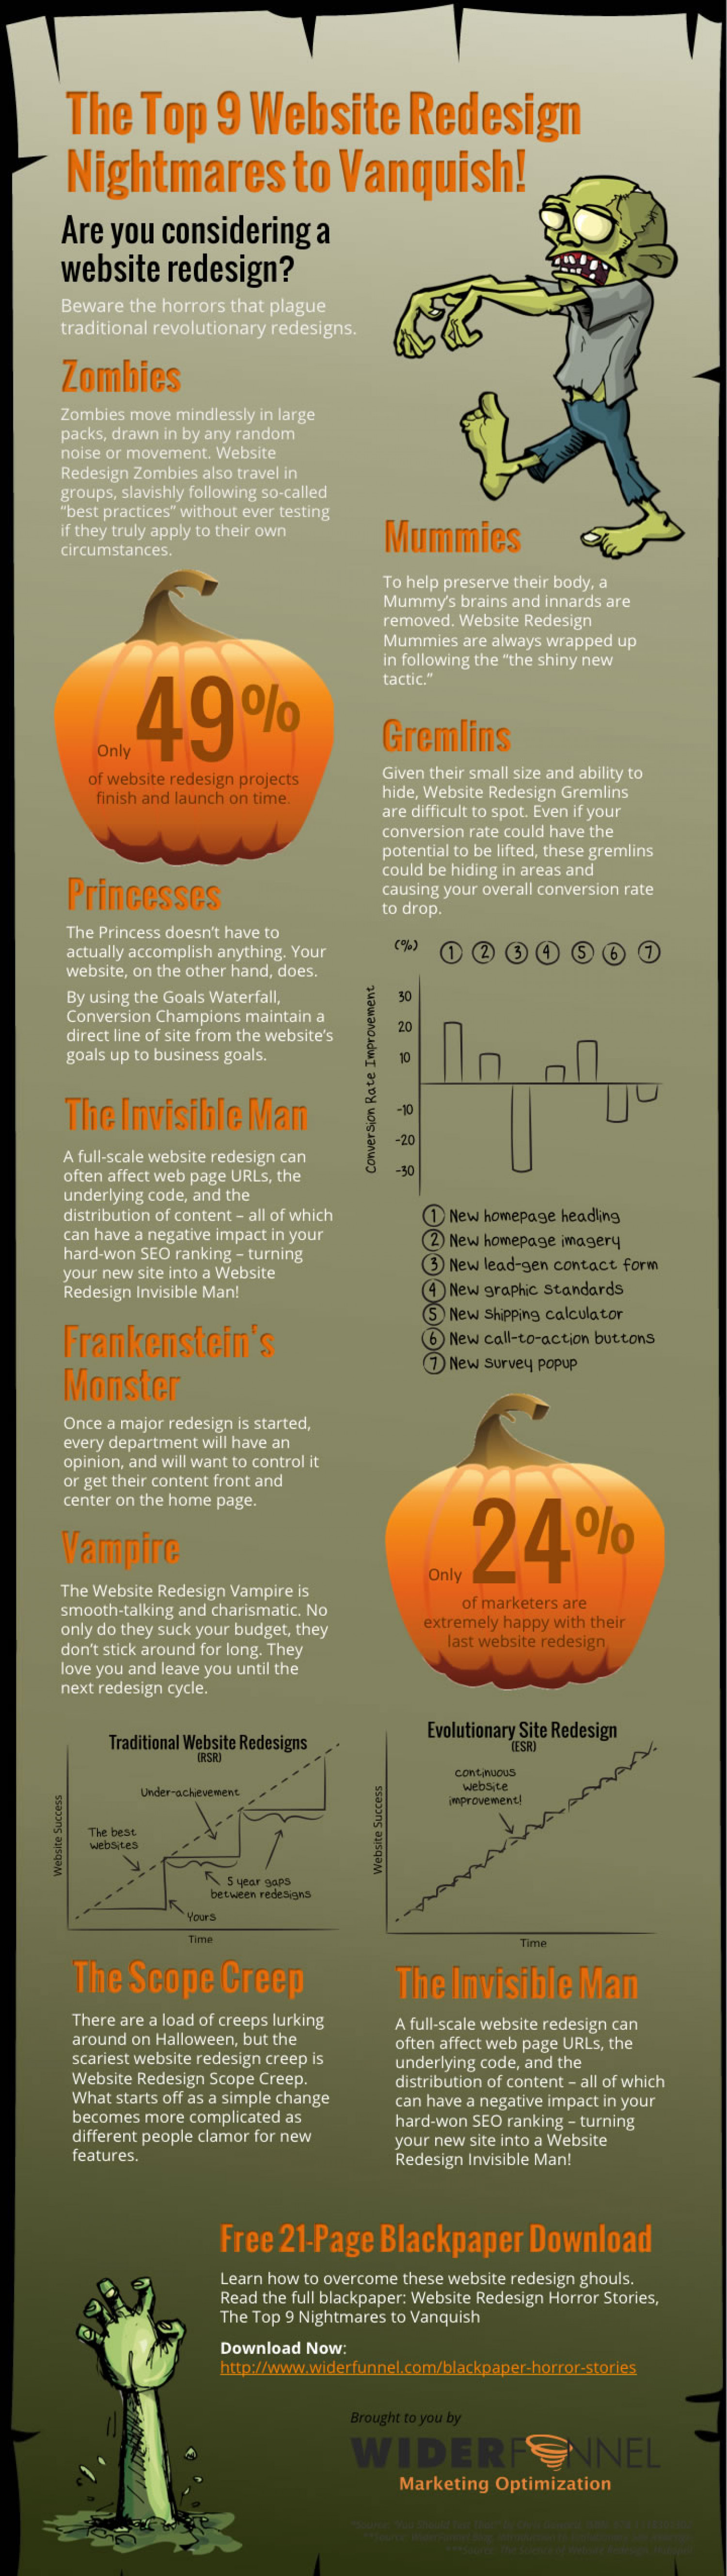 The Top 9 Website Redesign Nightmares Infographic